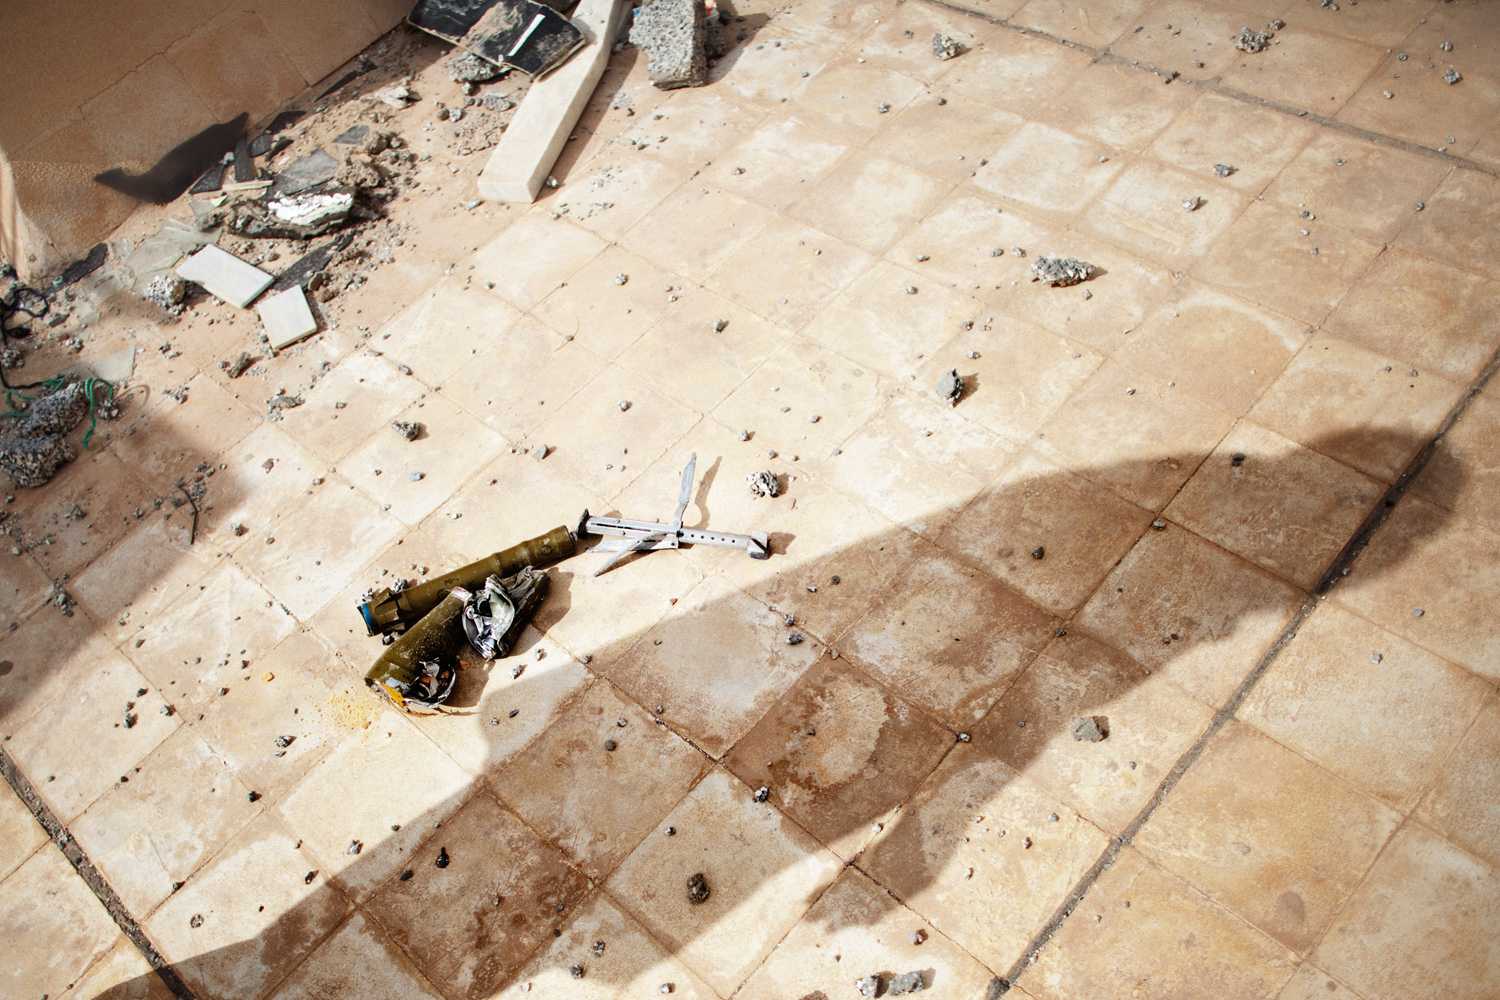 October 30, 2011. The shadow of a resident of the restive city of Bani Walid, Libya is caste near the wreck of a rocket propelled grenade on the roof of a damaged building.